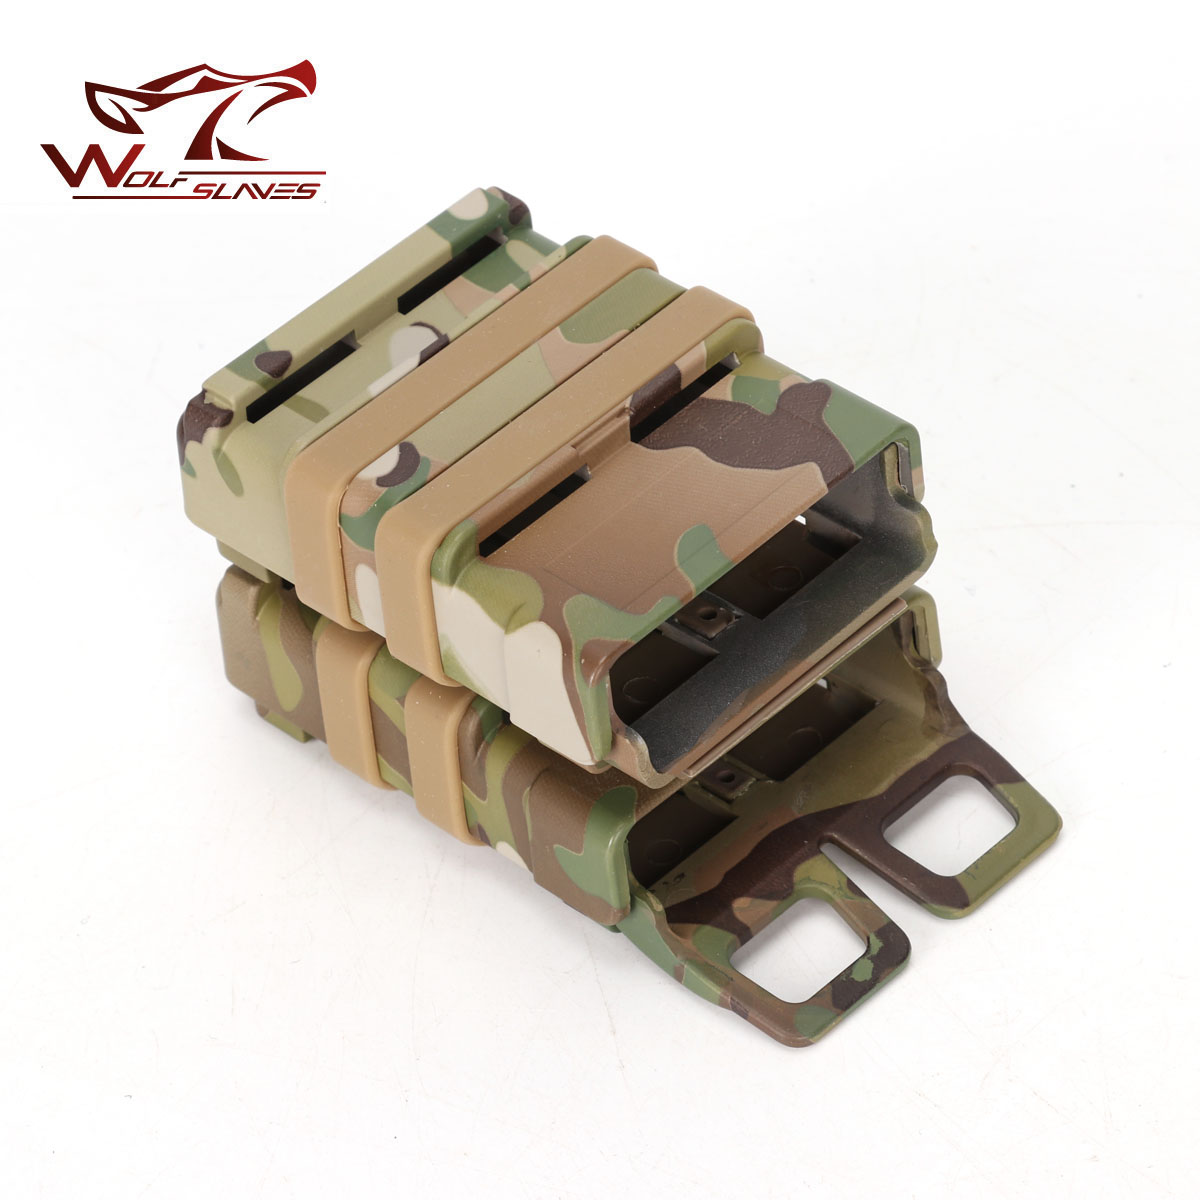 US $10 48 22% OFF|Outdoor AEG Box Tactical Rifle Gun 5 56 Fast Mag Double  Magazine Pouch Molle Strike System Case for M4/M16/AR15 Accessories-in